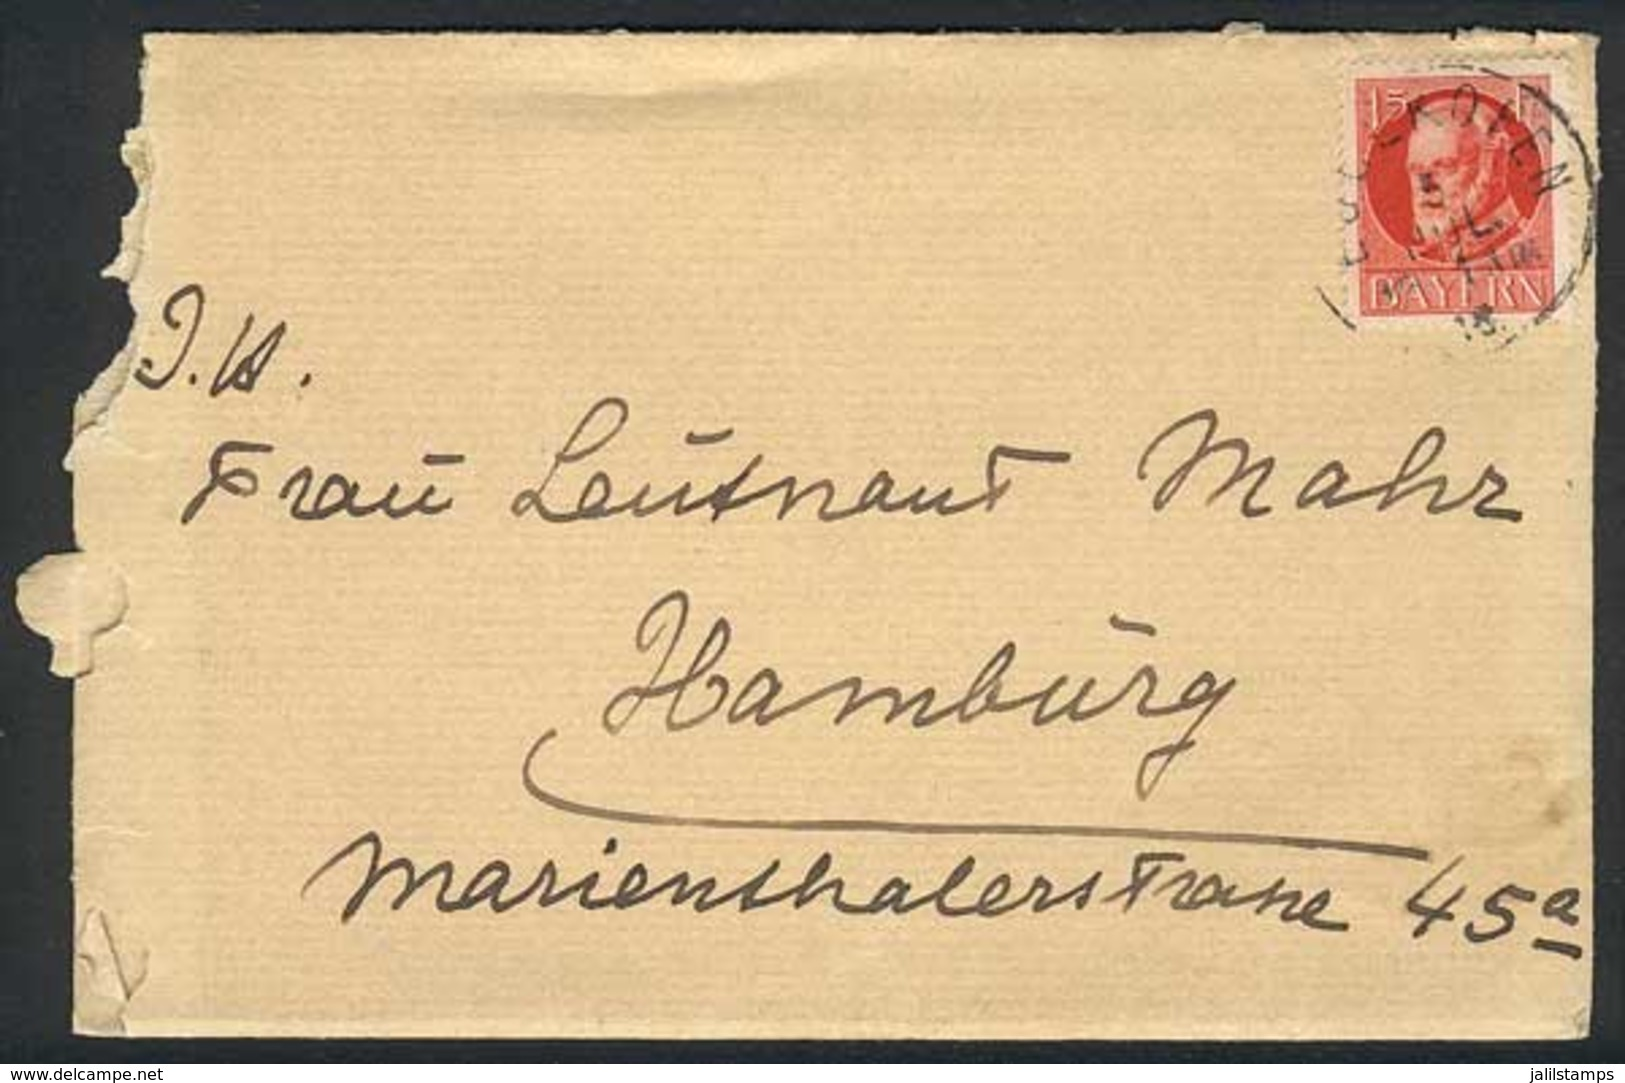 GERMANY: 9 Covers Used Between 1918 And 1939, 2 From Bavaria (with Its Original Content) And 3 Official, Fine To VF Qual - Allemagne